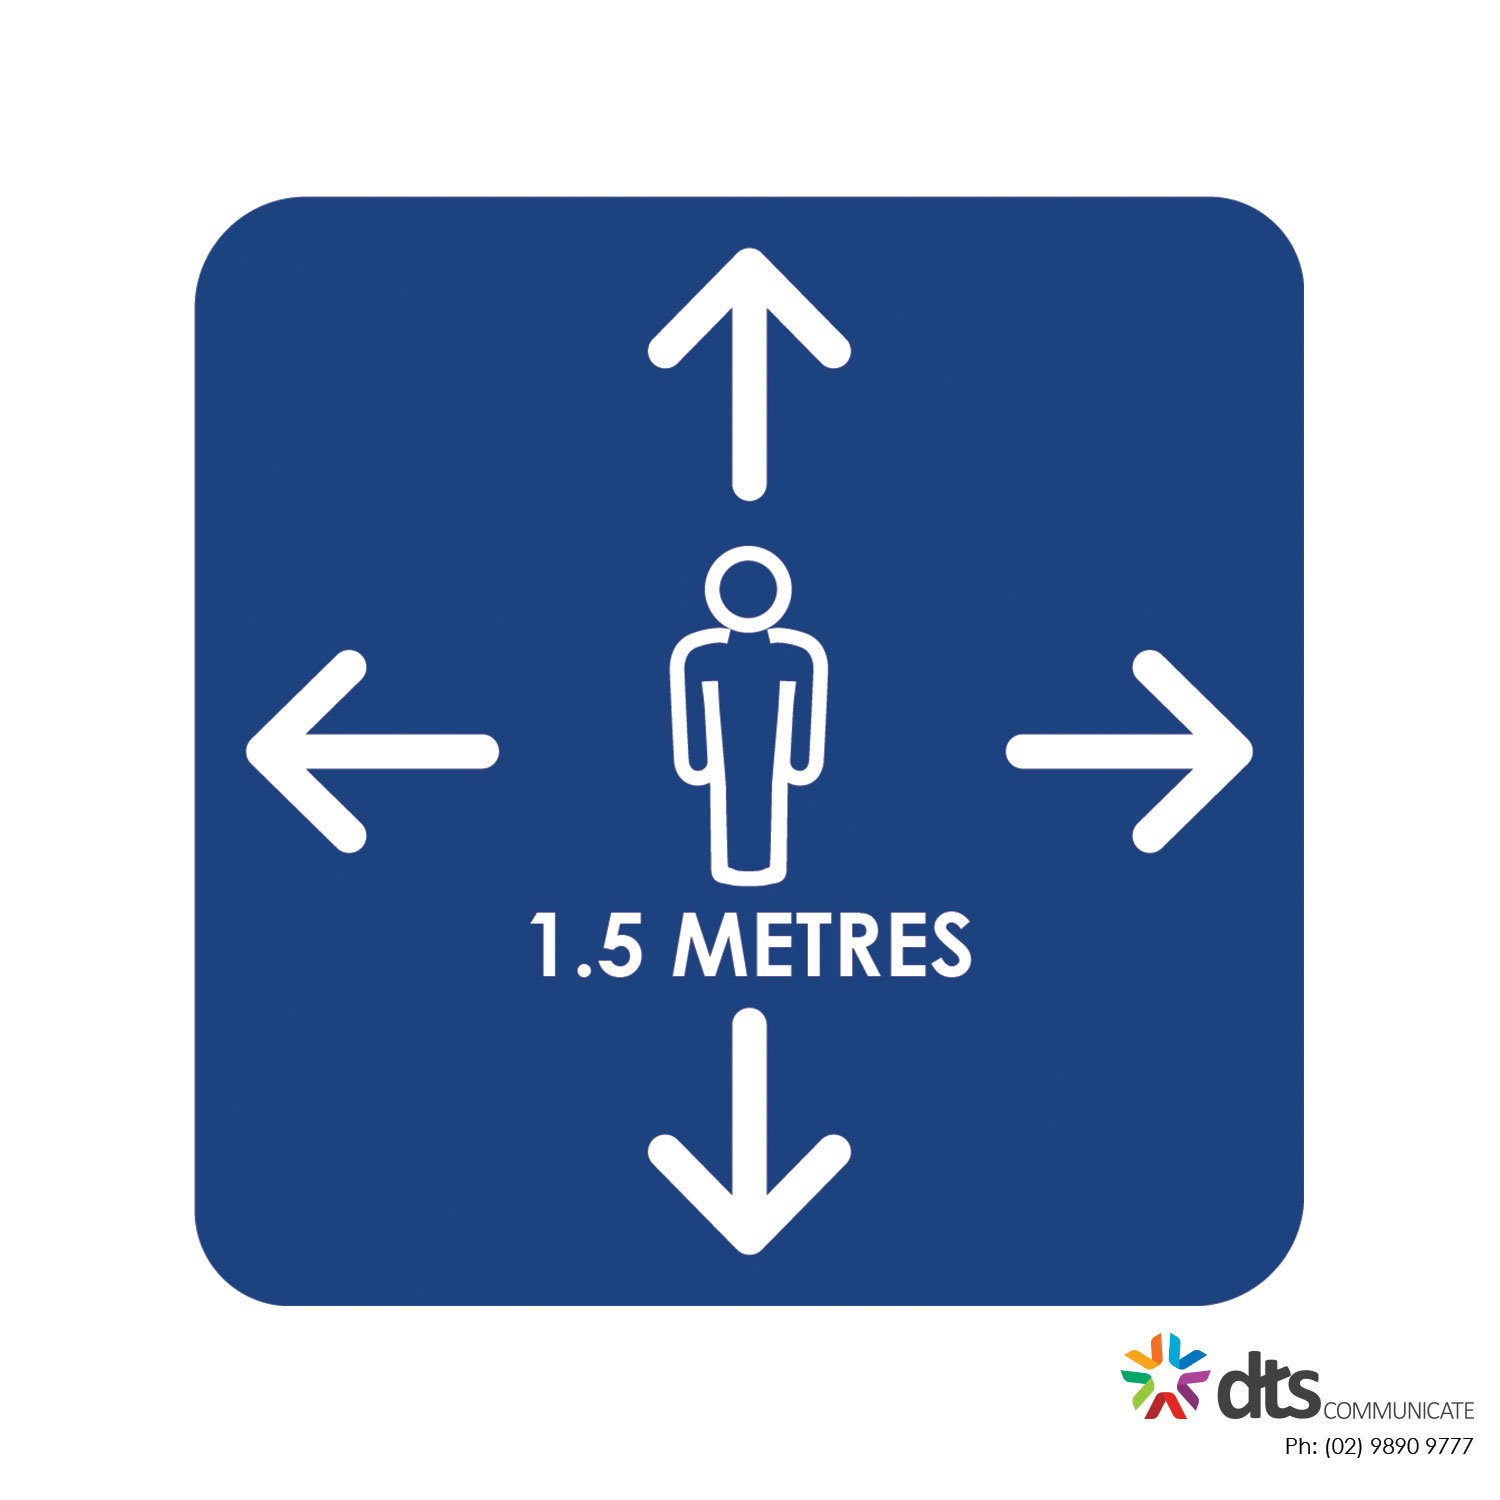 XLART DTS Covid19 Covid Floor Stickers Decals Social Distancing Sydney Melbourne Australia person distance style 27